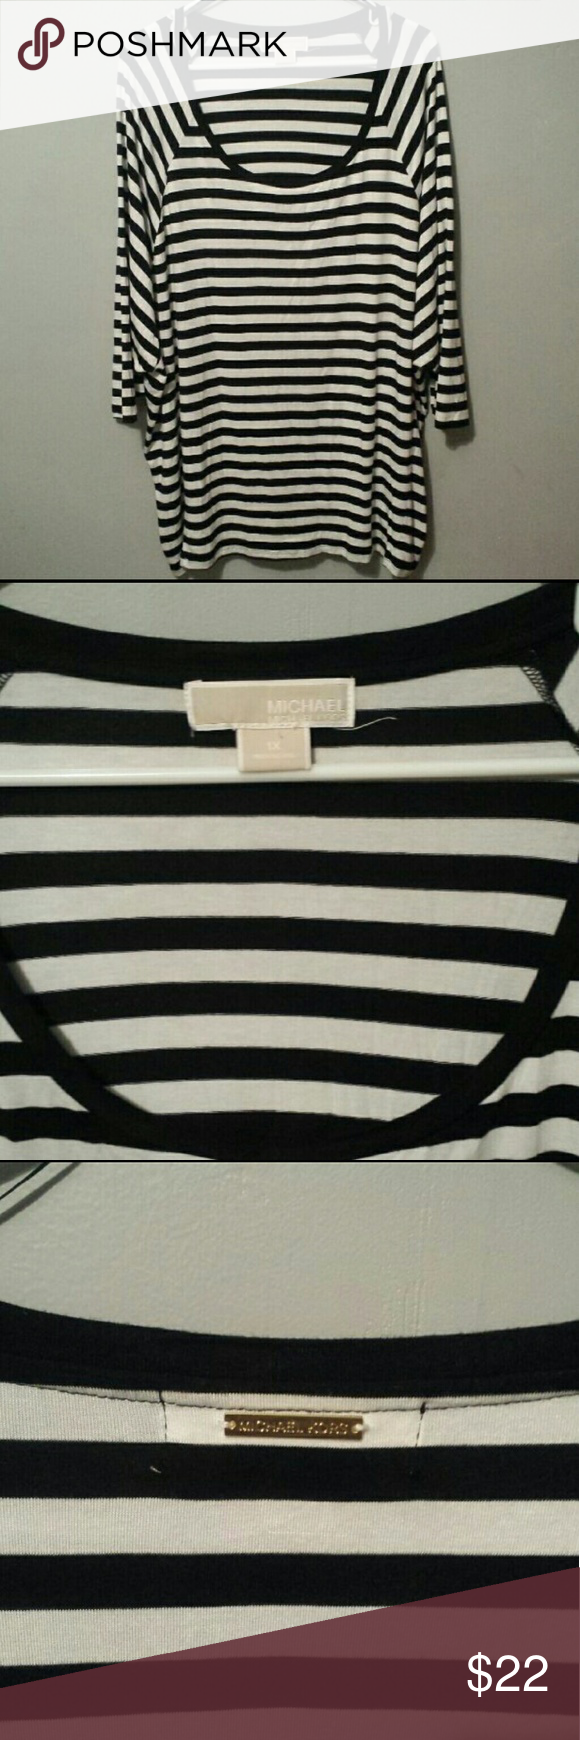 Michael kors tunic plus size Tunic plus size Classic stripe Crew neck Great condition no stains and holes or sigh of wear Michael kors Tops Tunics